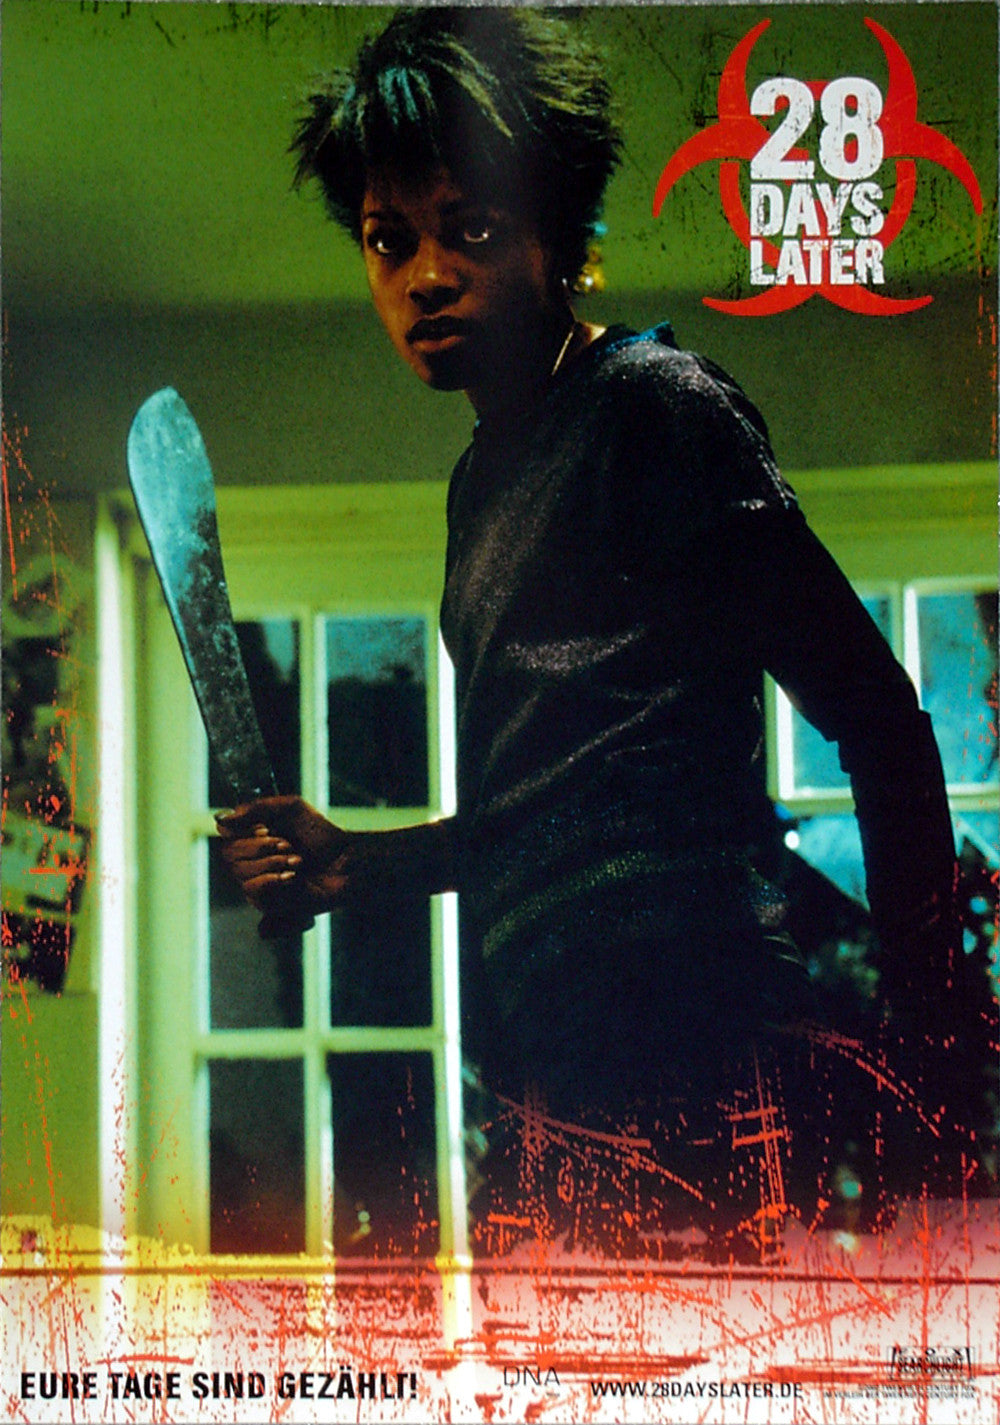 28 DAYS LATER - German lobby card v4